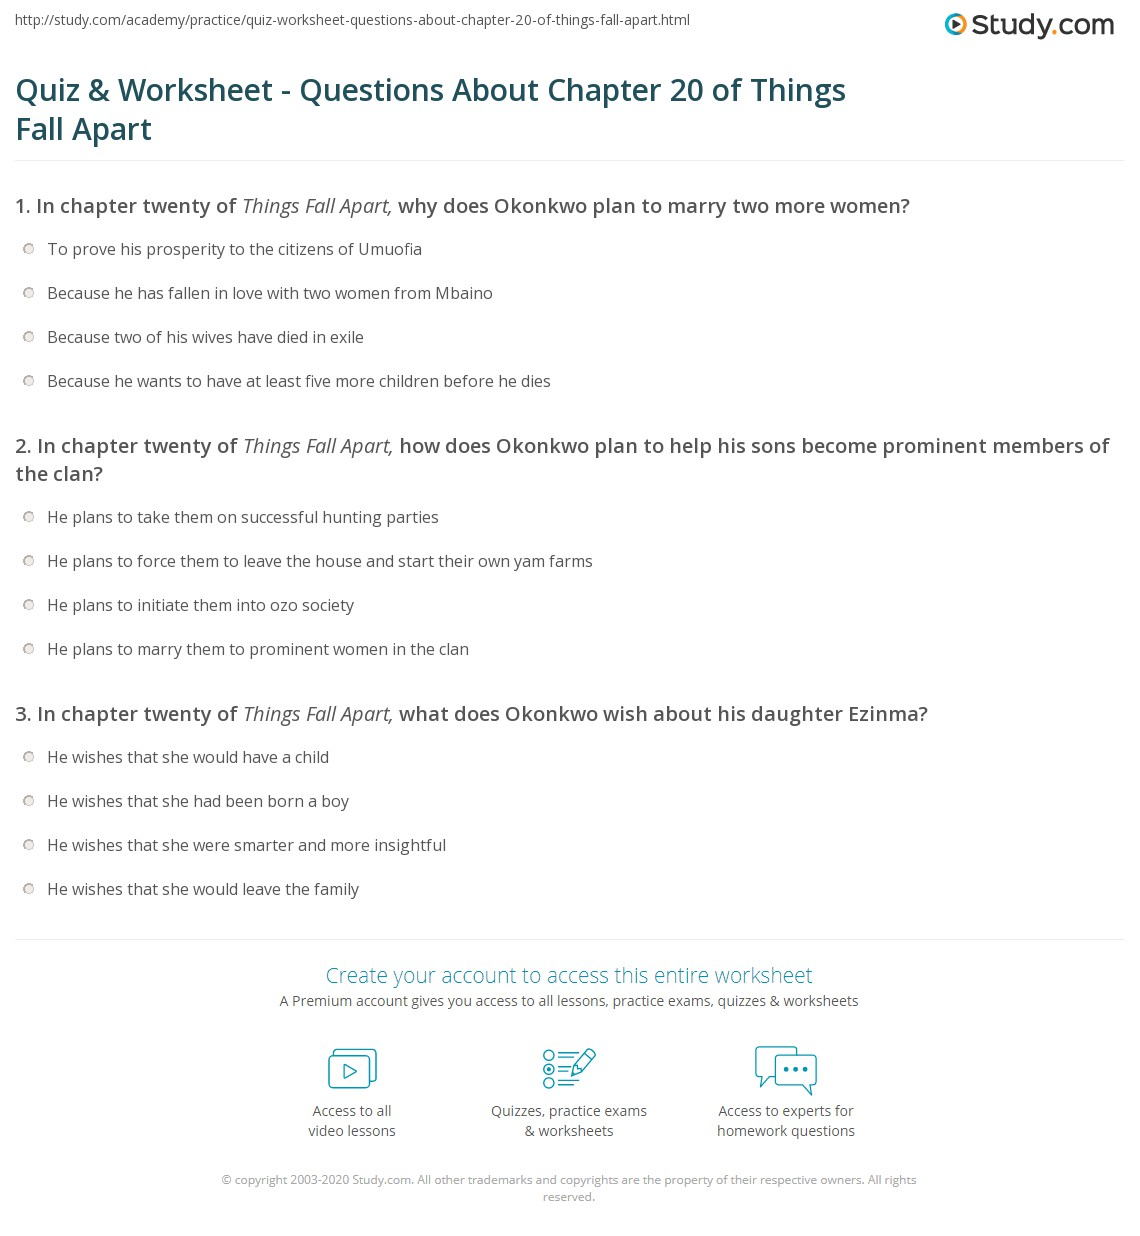 Quiz  Worksheet  Questions About Chapter  Of Things Fall Apart  In Chapter Twenty Of Things Fall Apart How Does Okonkwo Plan To Help His  Sons Become Prominent Members Of The Clan Literature Review Buy also Custom Speech Writing Services  Professional Writing Services Los Angeles